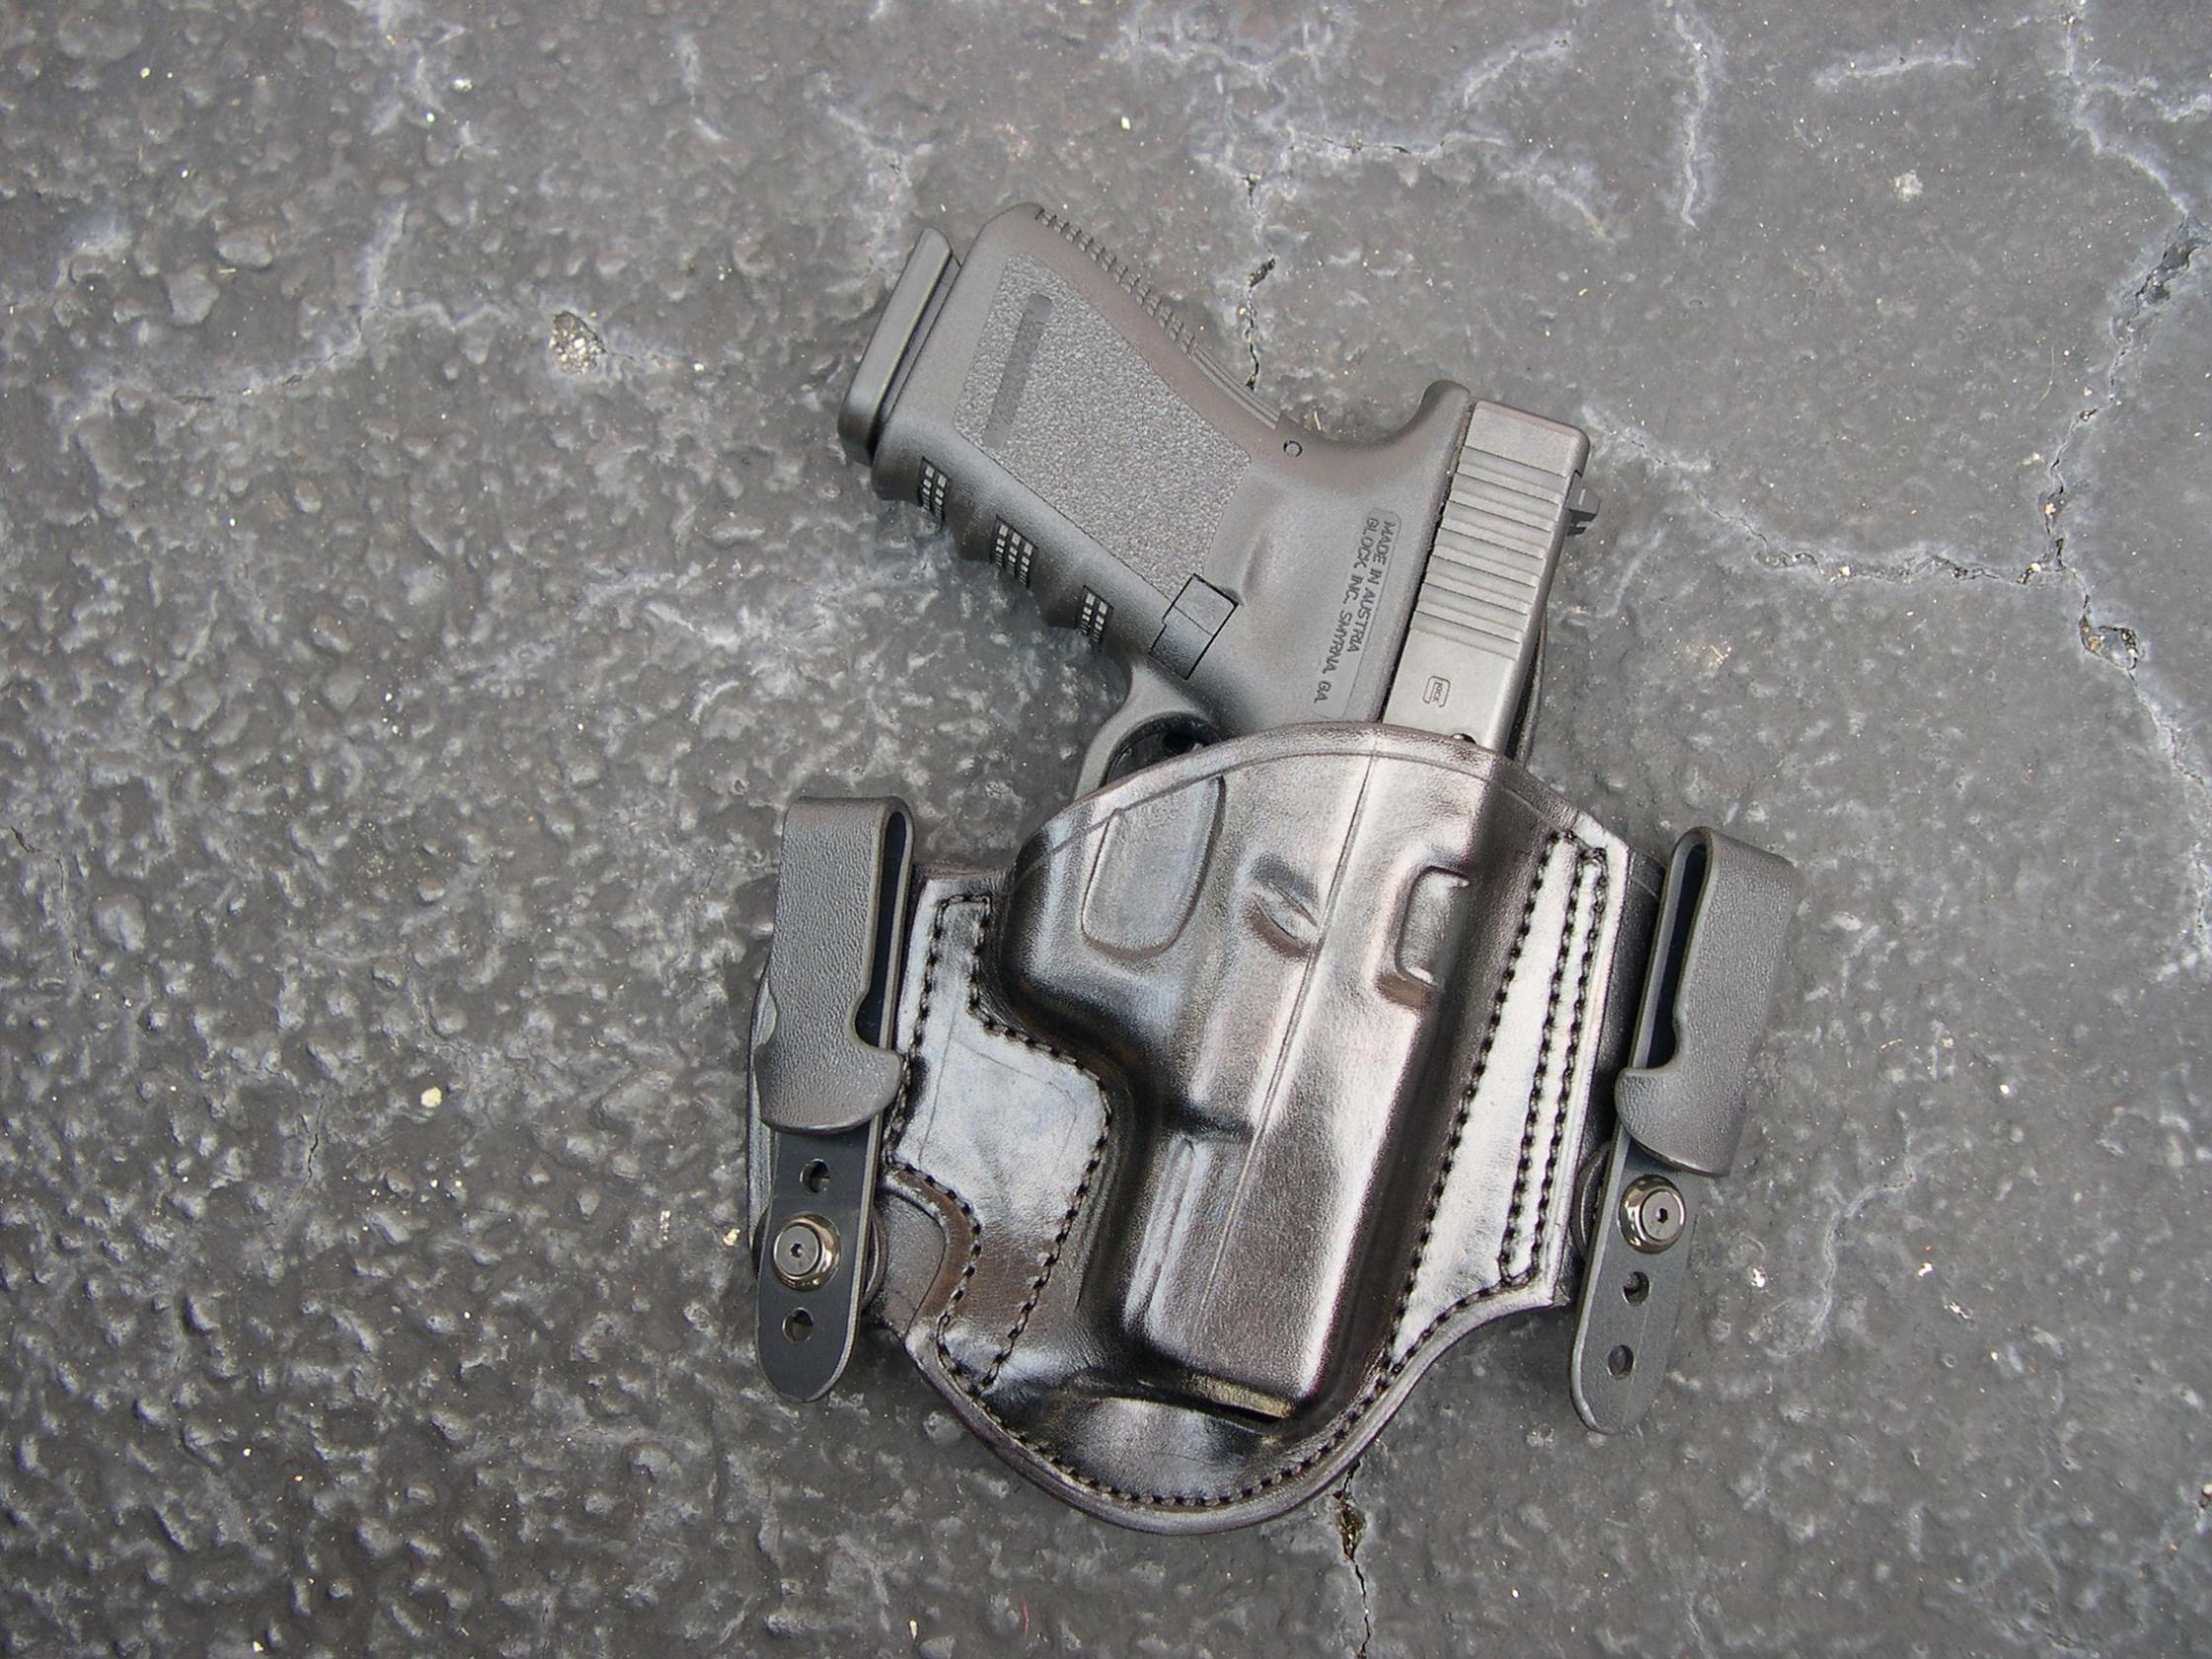 Recommendations for quality Glock 23 holsters-img2109.jpg